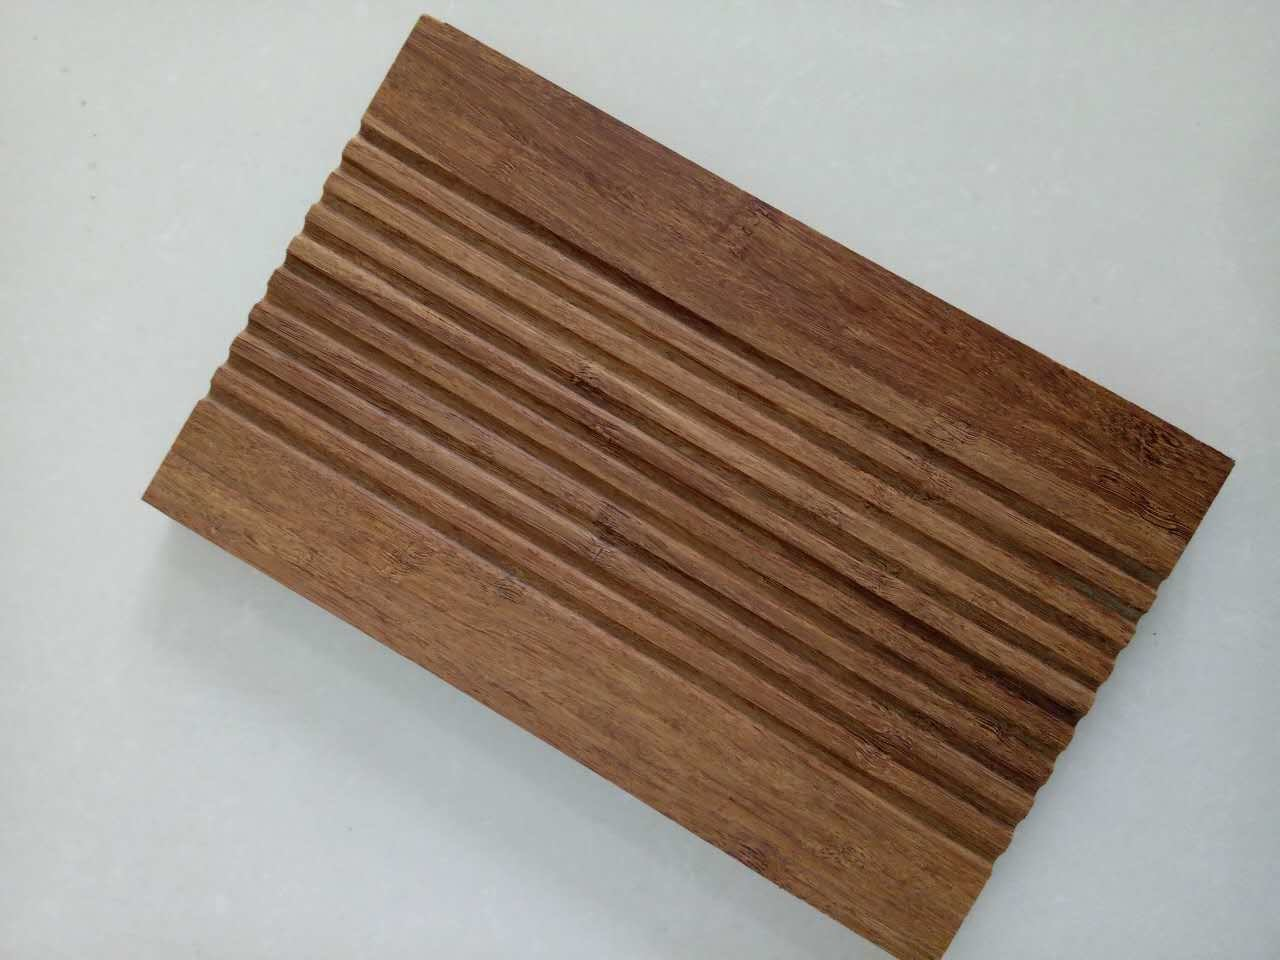 Strand Woven Bamboo Flooring, Outdoor Bamboo Flooring, Light Carbonized 20mm